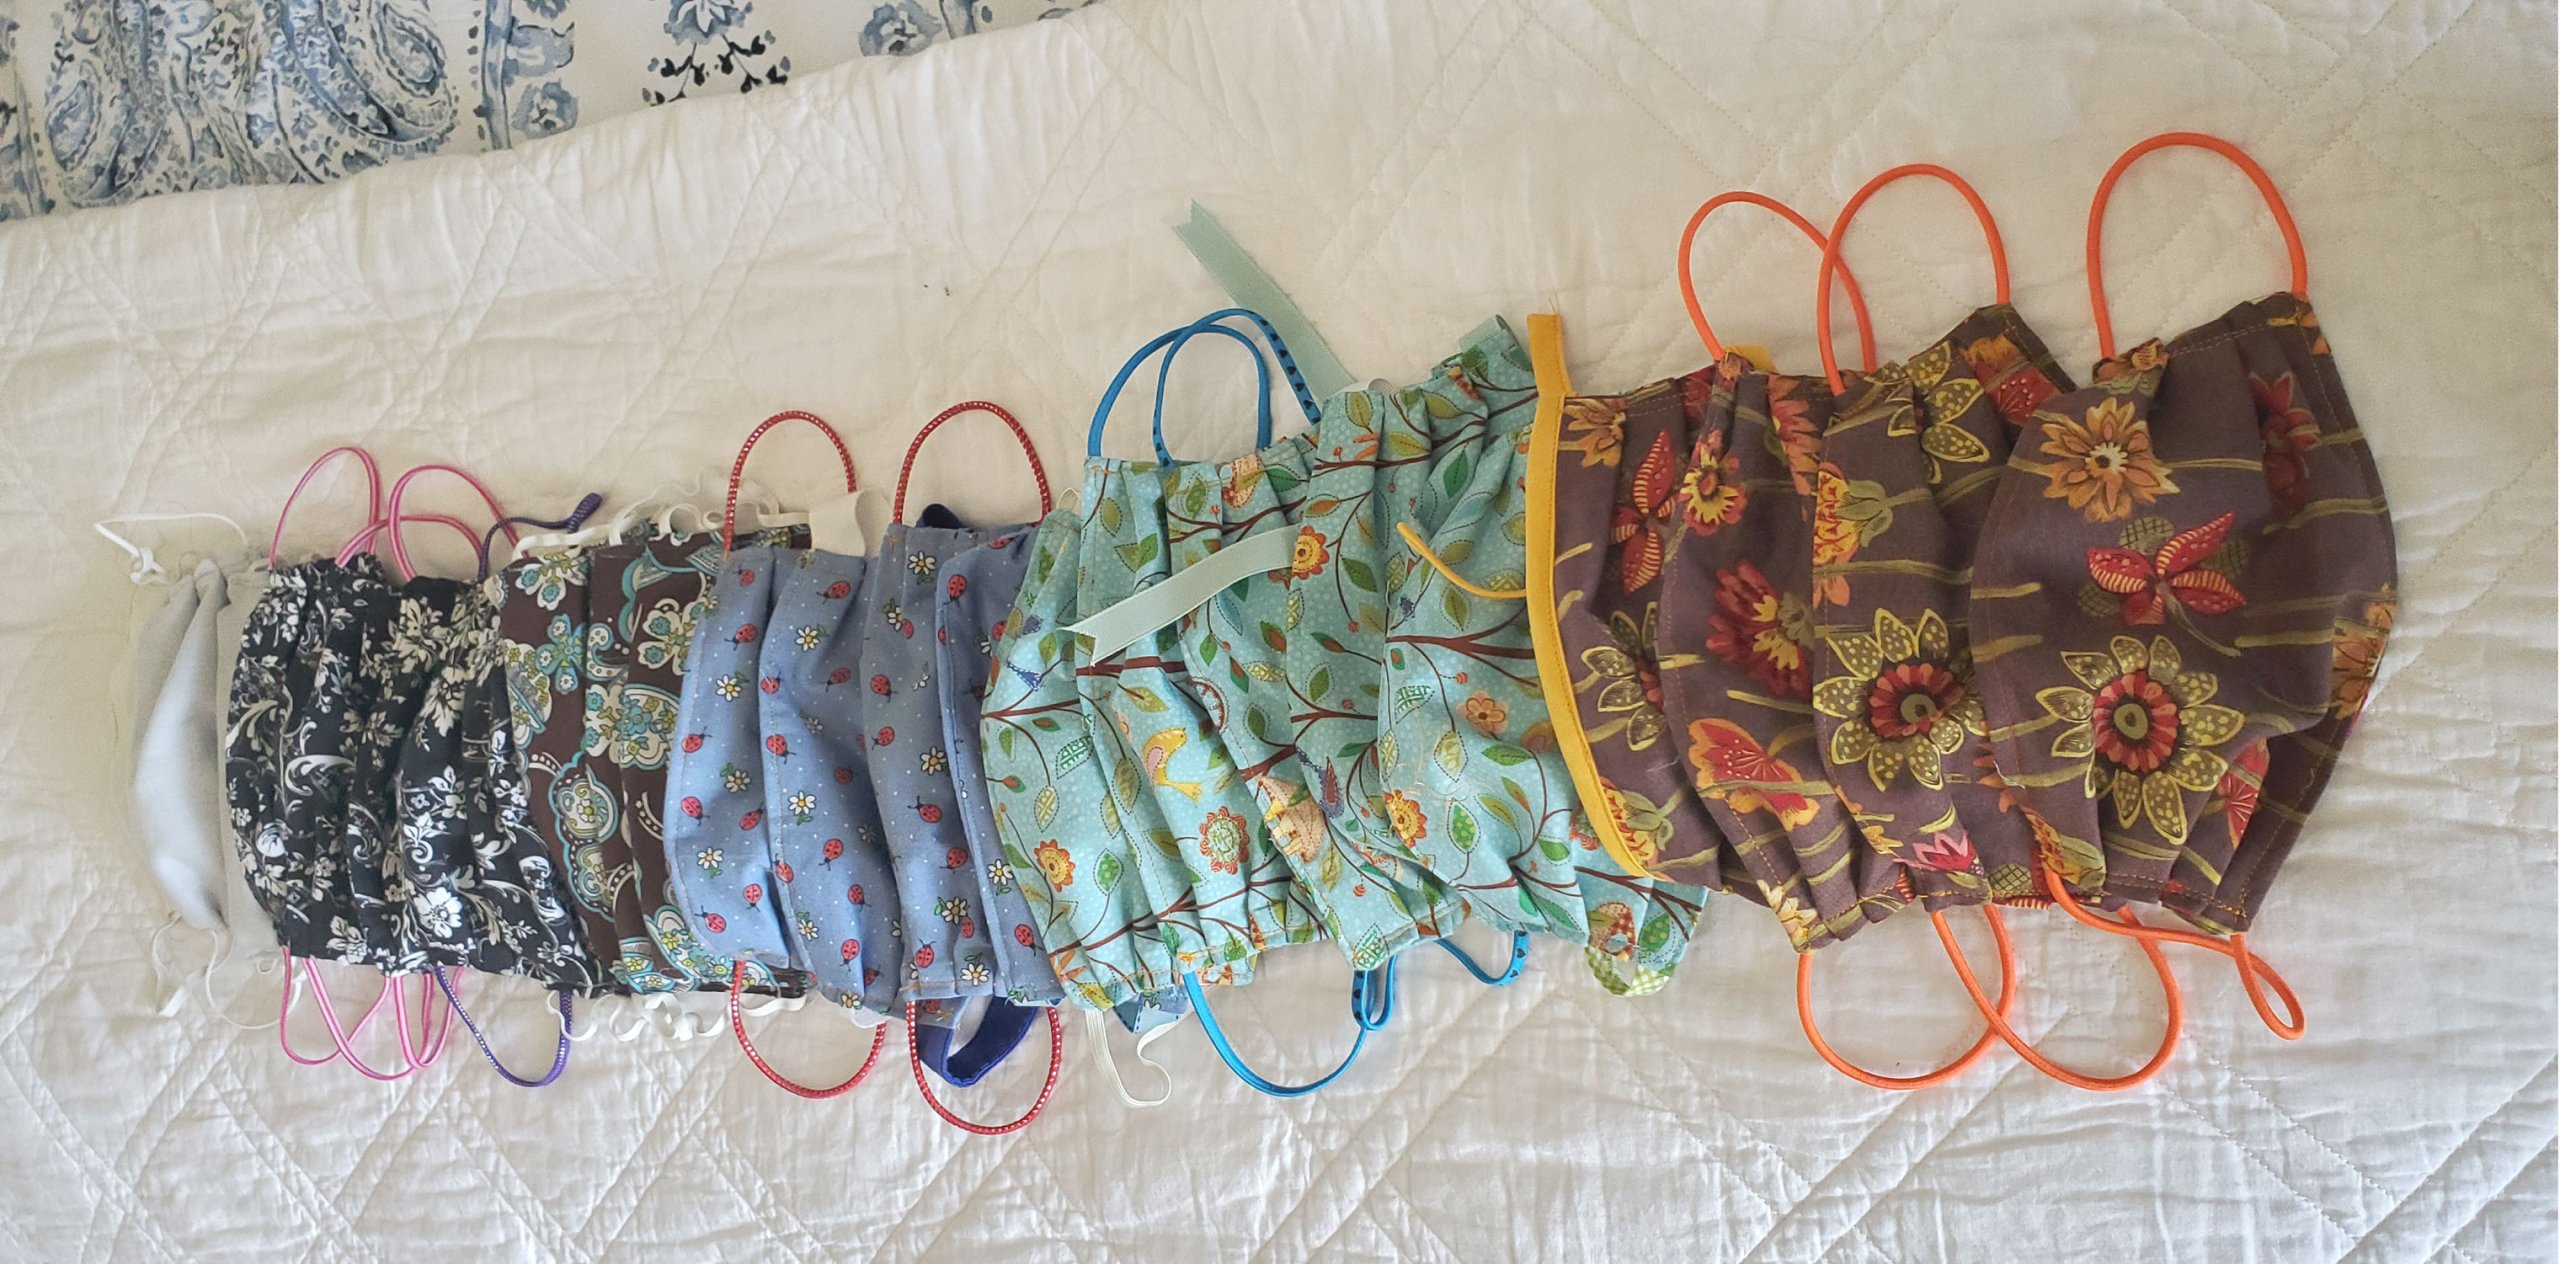 Cloth masks made by Cindy Vaccaro for those in need during COVID-19